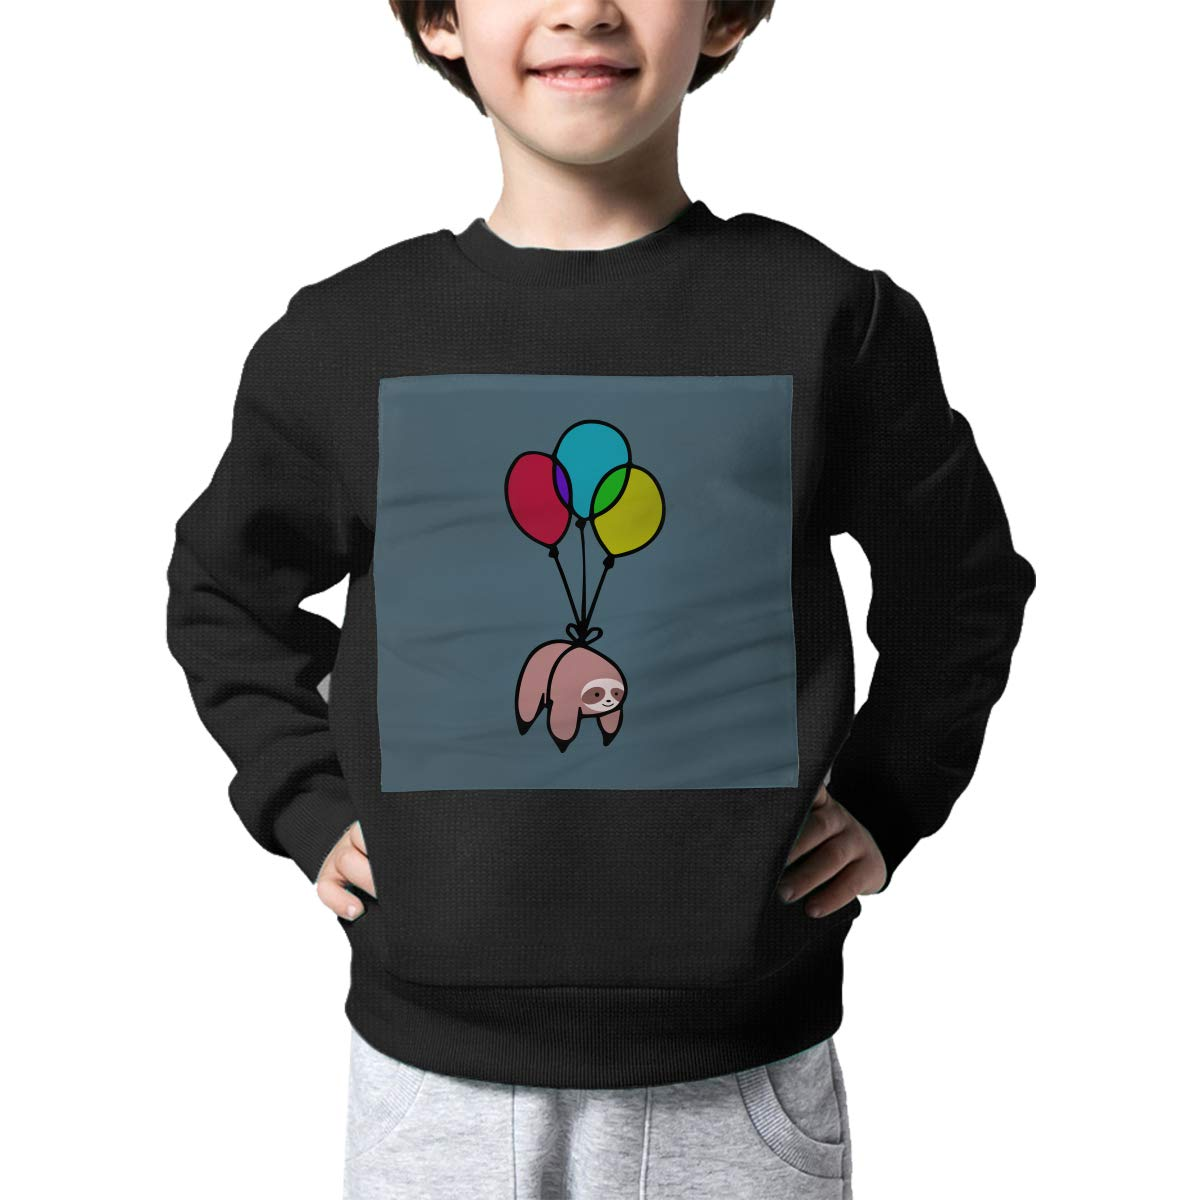 Balloon Sloth Print Toddler Kids Crew Neck Sweater Long Sleeve Warm Knit Sweater Jumper